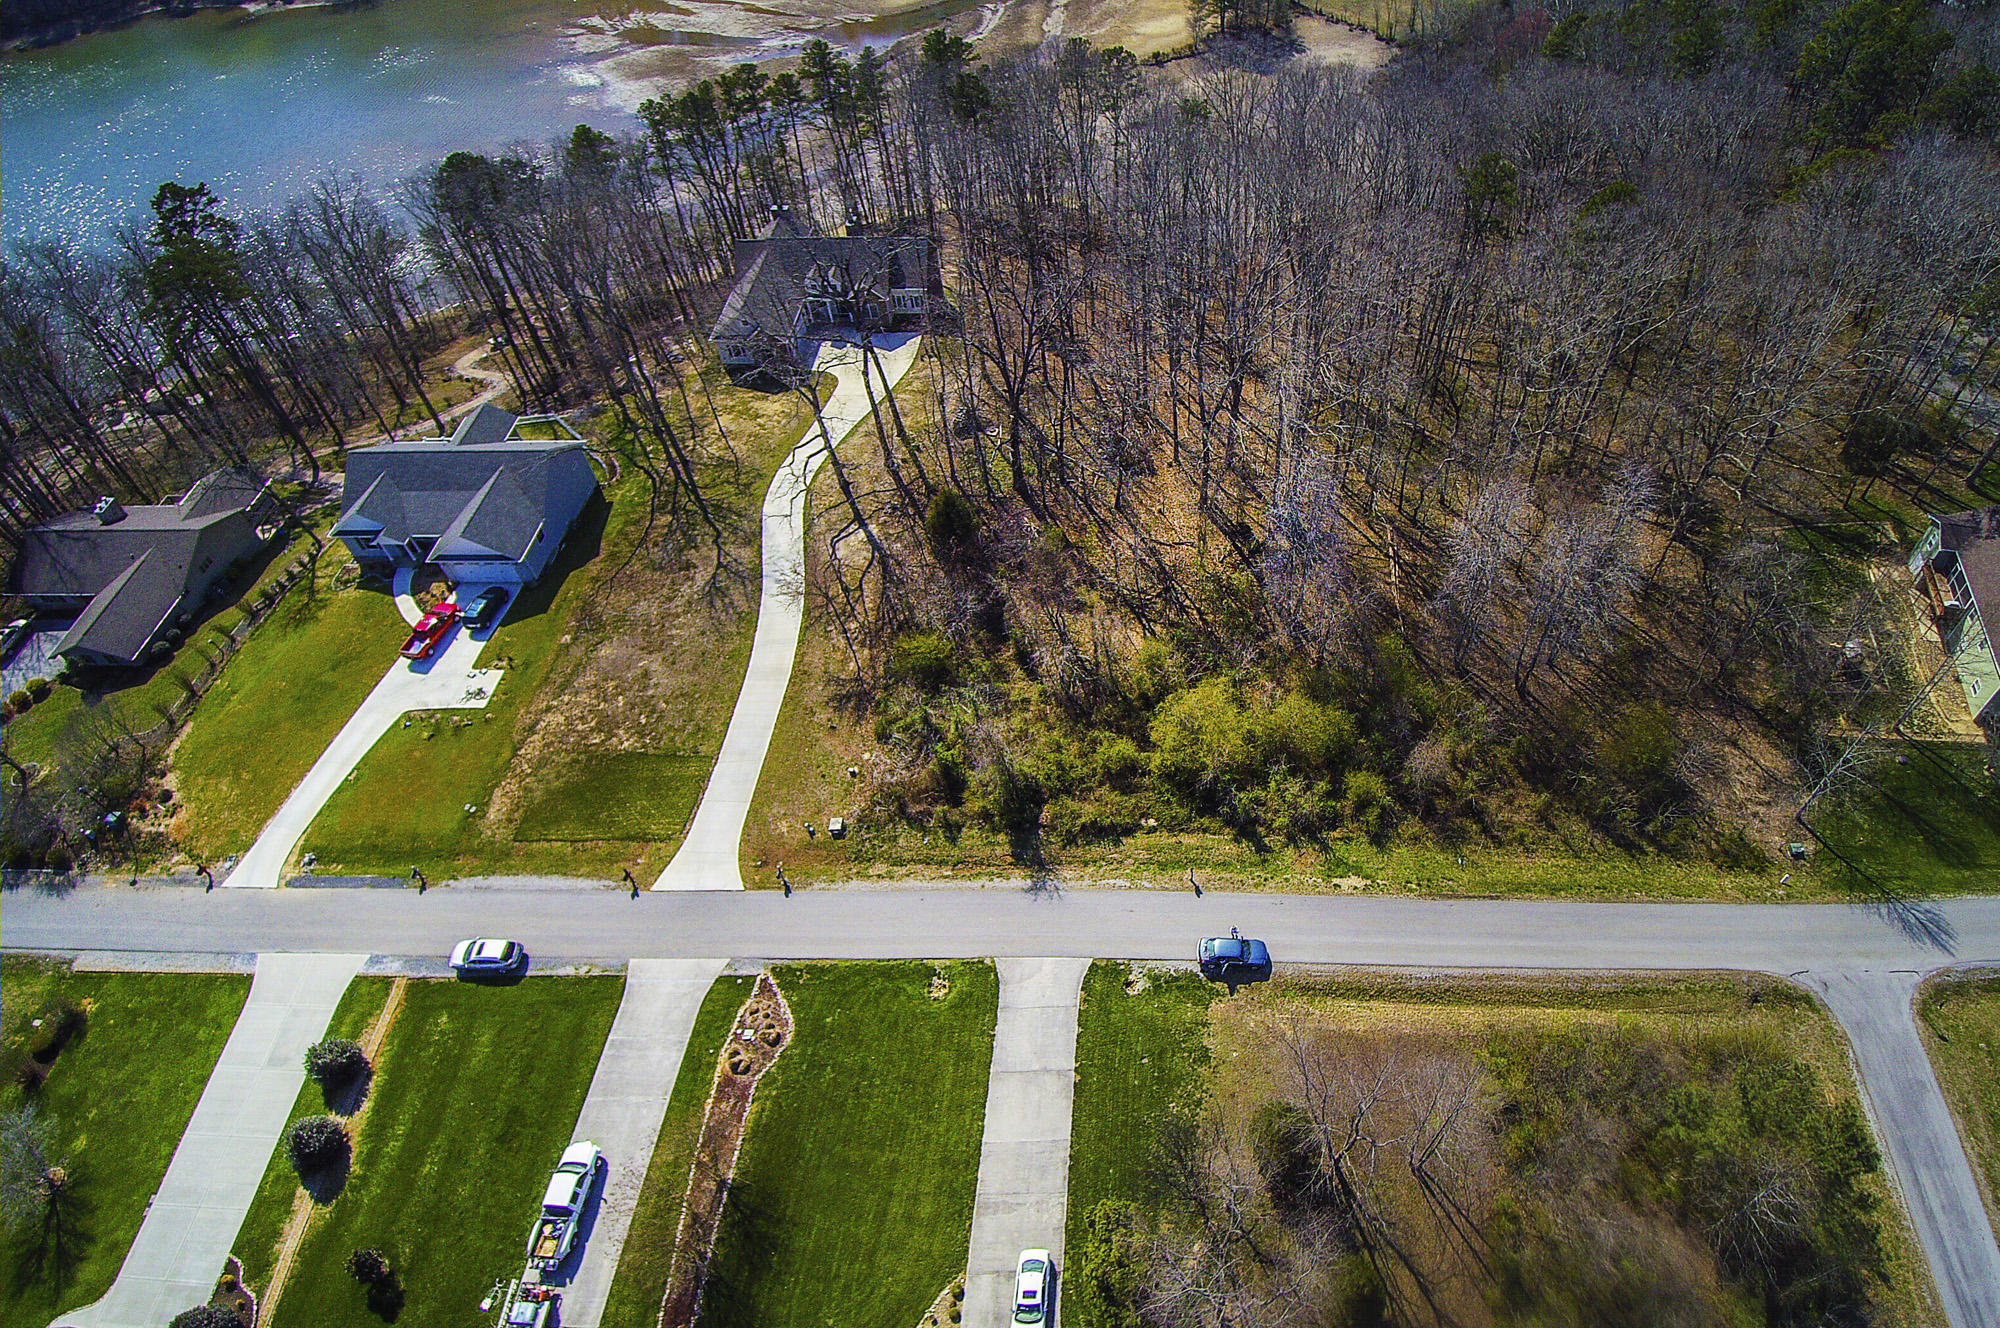 216 Oonoga Way, Loudon, TN 37774